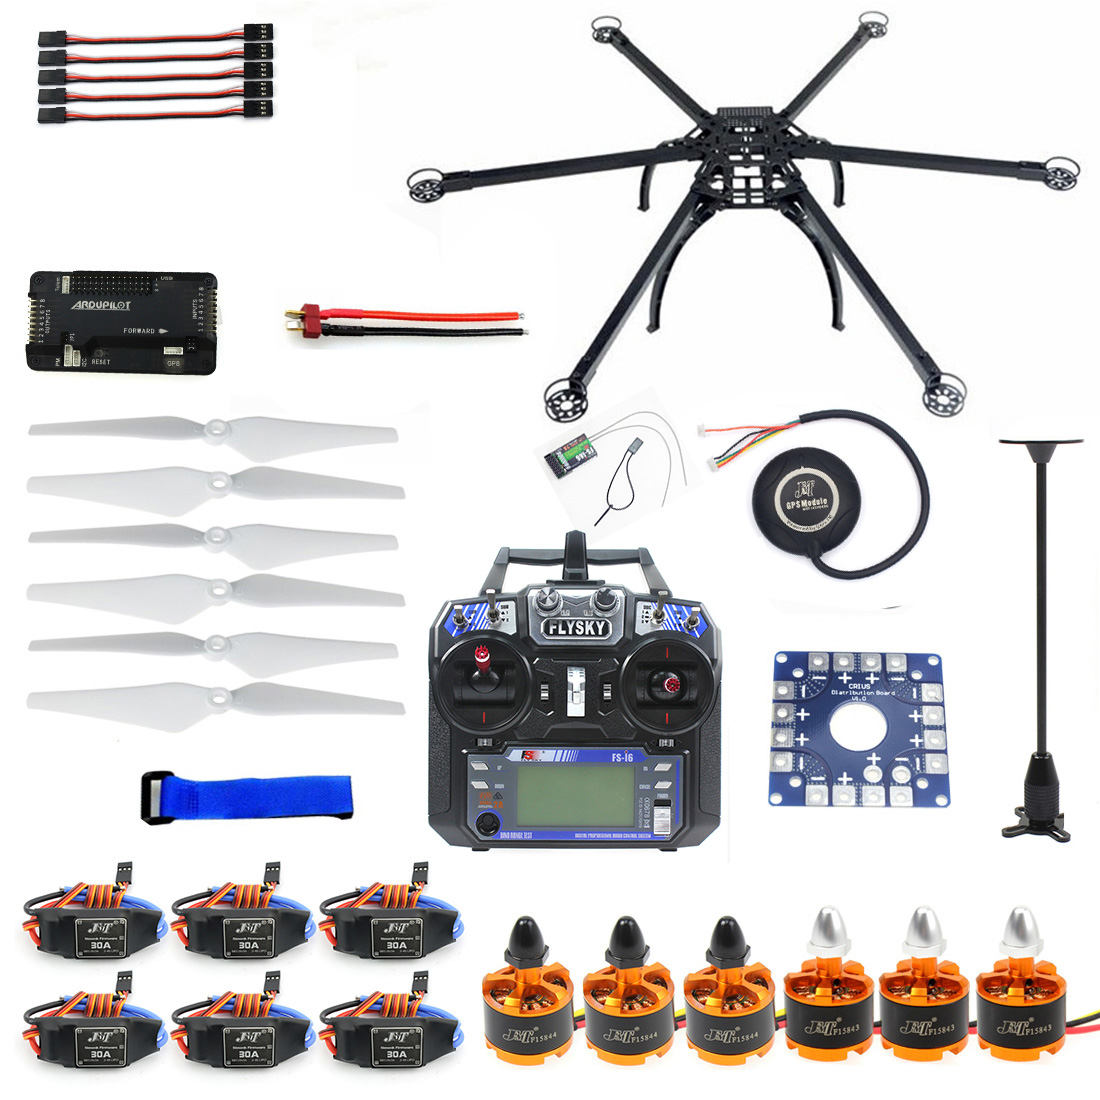 Six axle Hexacopter Unassembled GPS Drone Kit with Flysky FS i6 6CH 2 4G TX RX